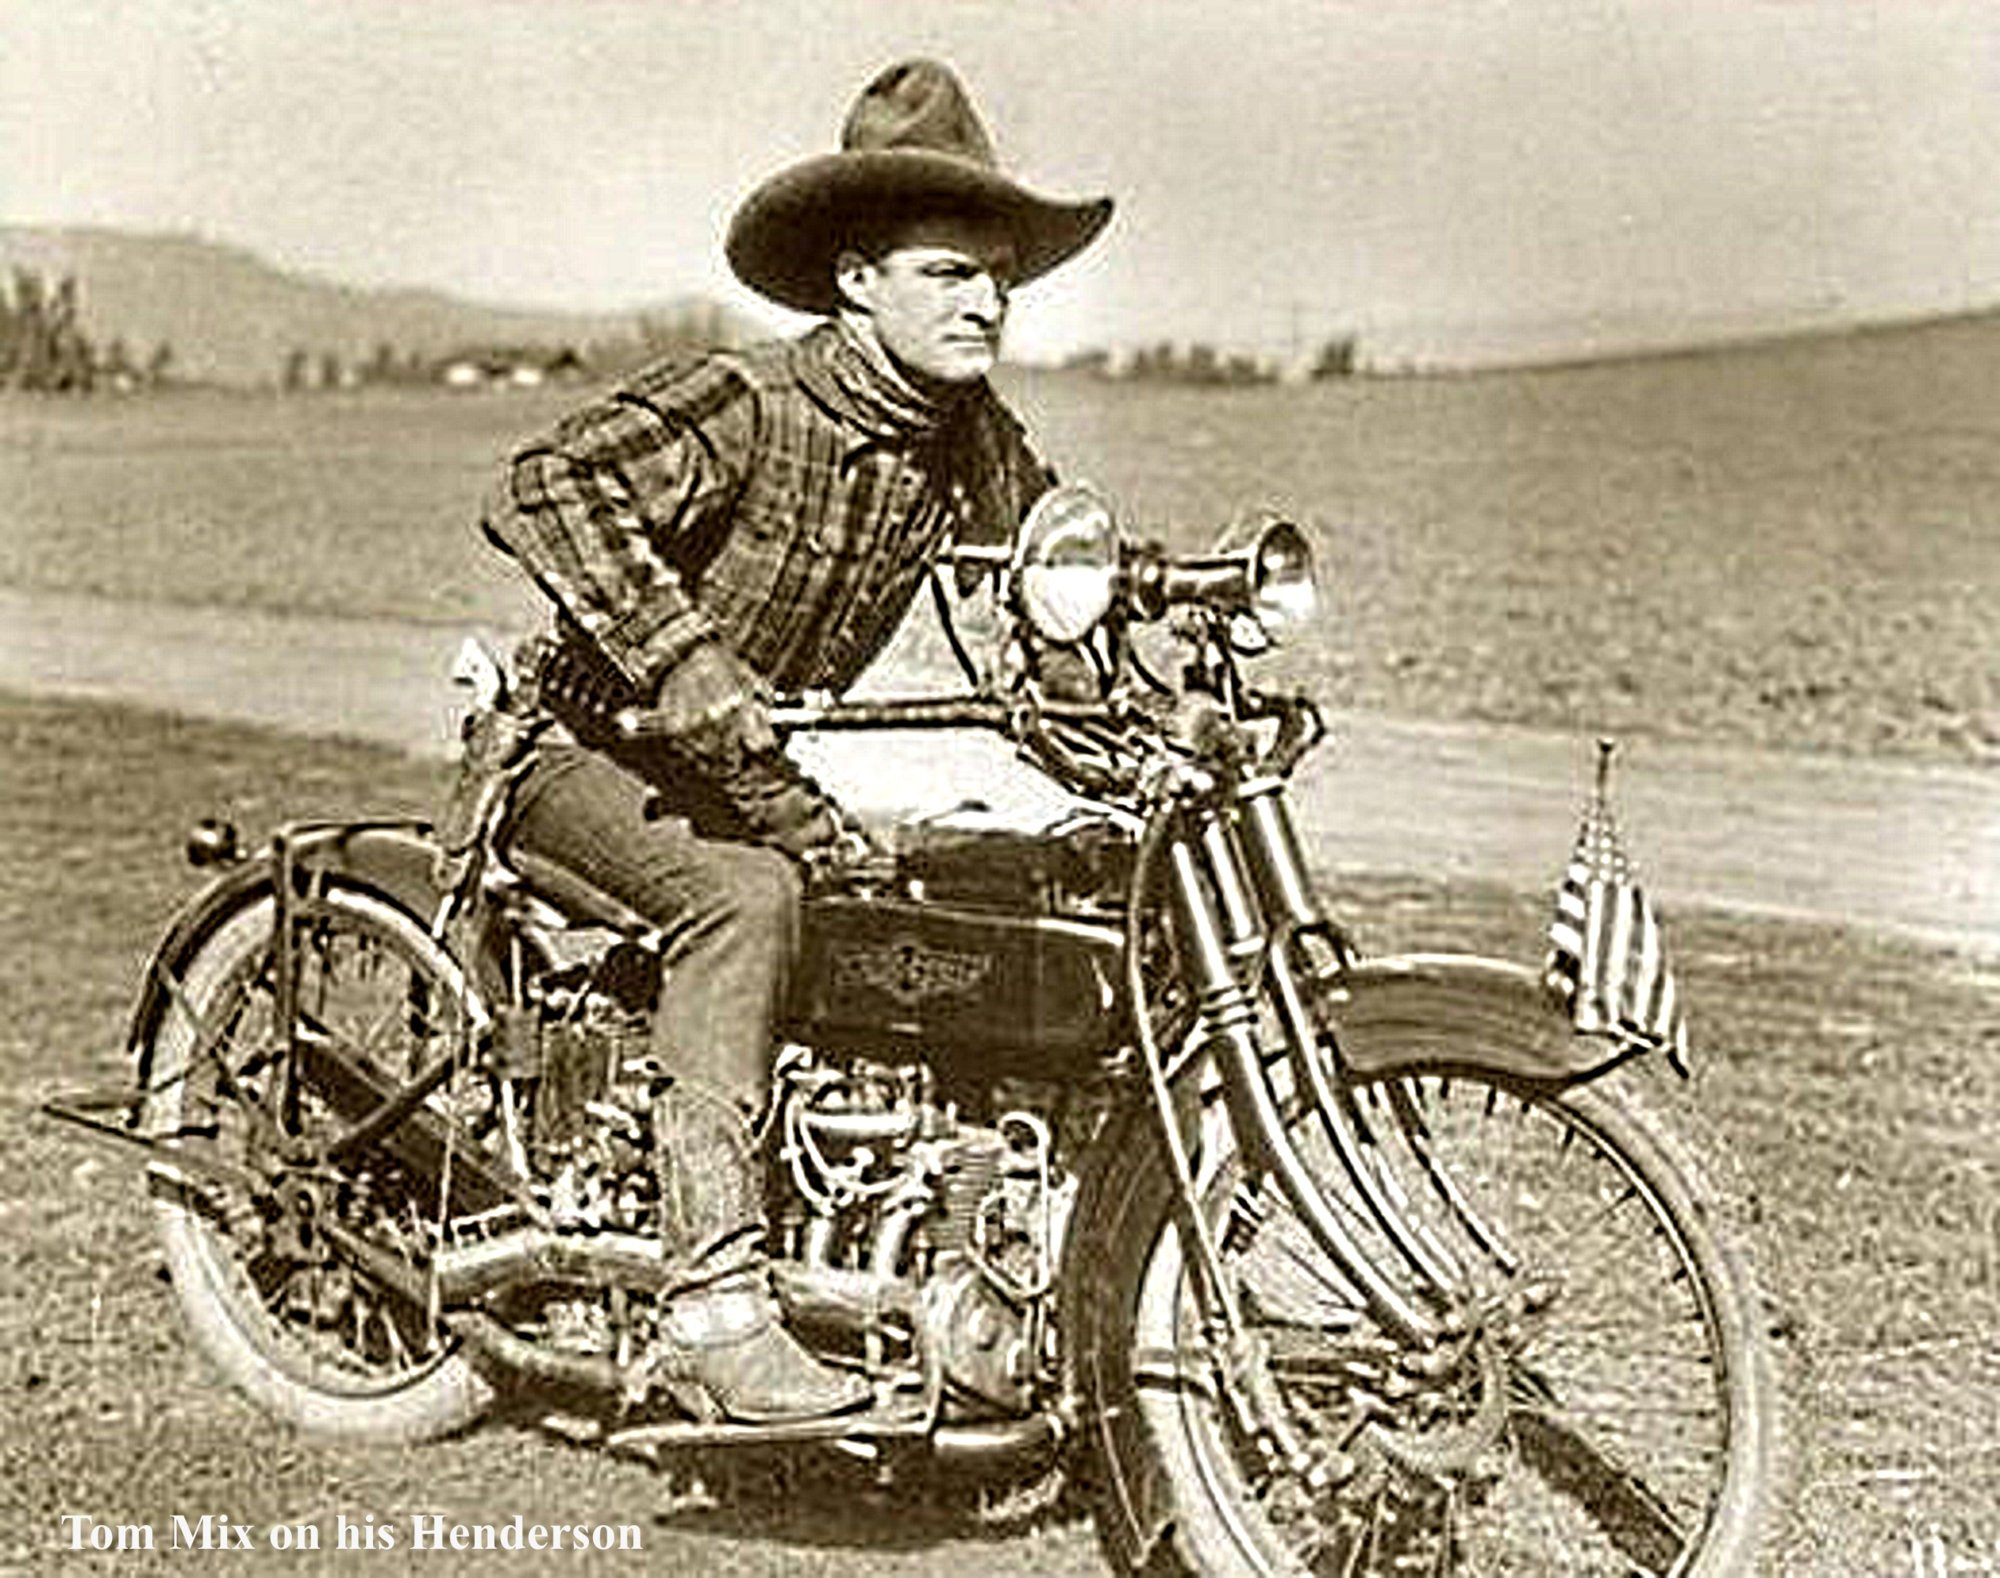 8e1269_ab82c896ca554e379f44138d257bfb05  tom mix.jpg